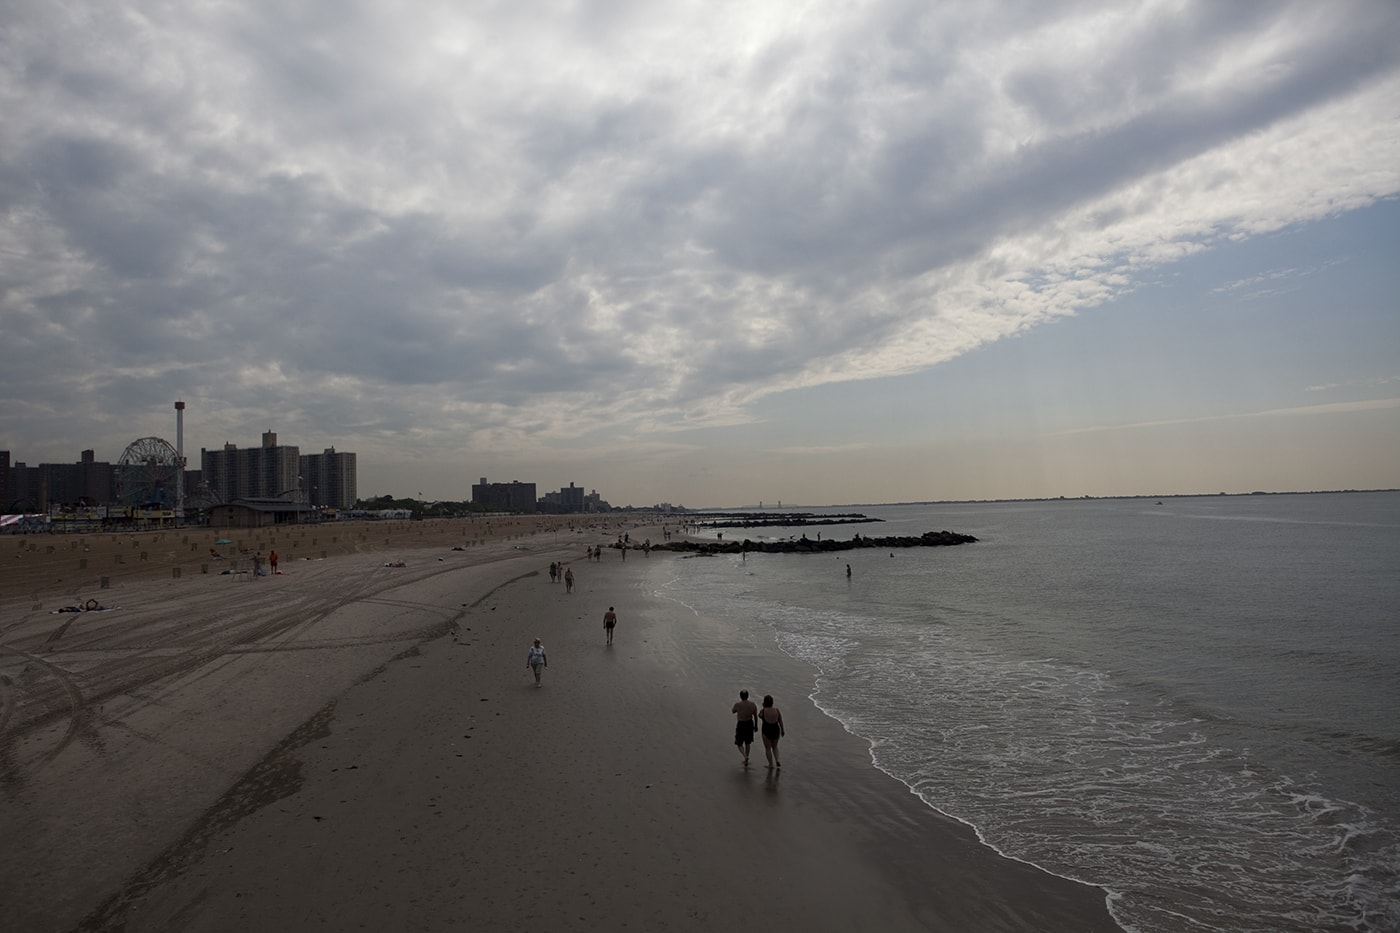 The beach at Coney Island in New York.